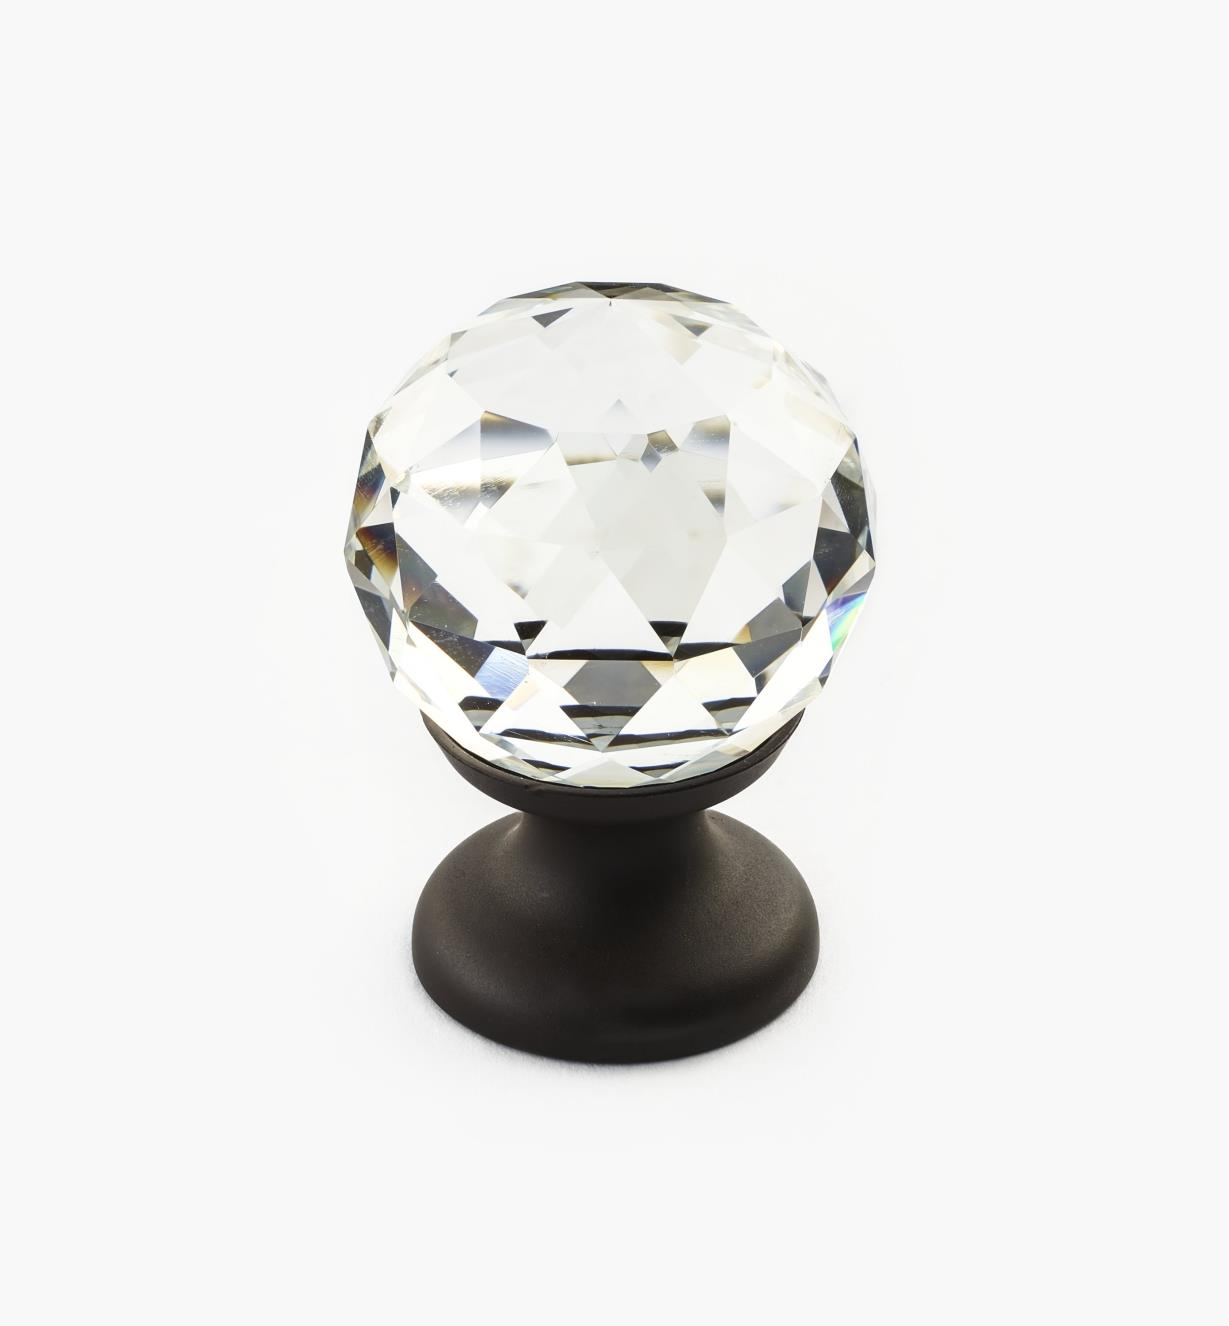 01A3450 - Small Faceted Glass Knob, ORB